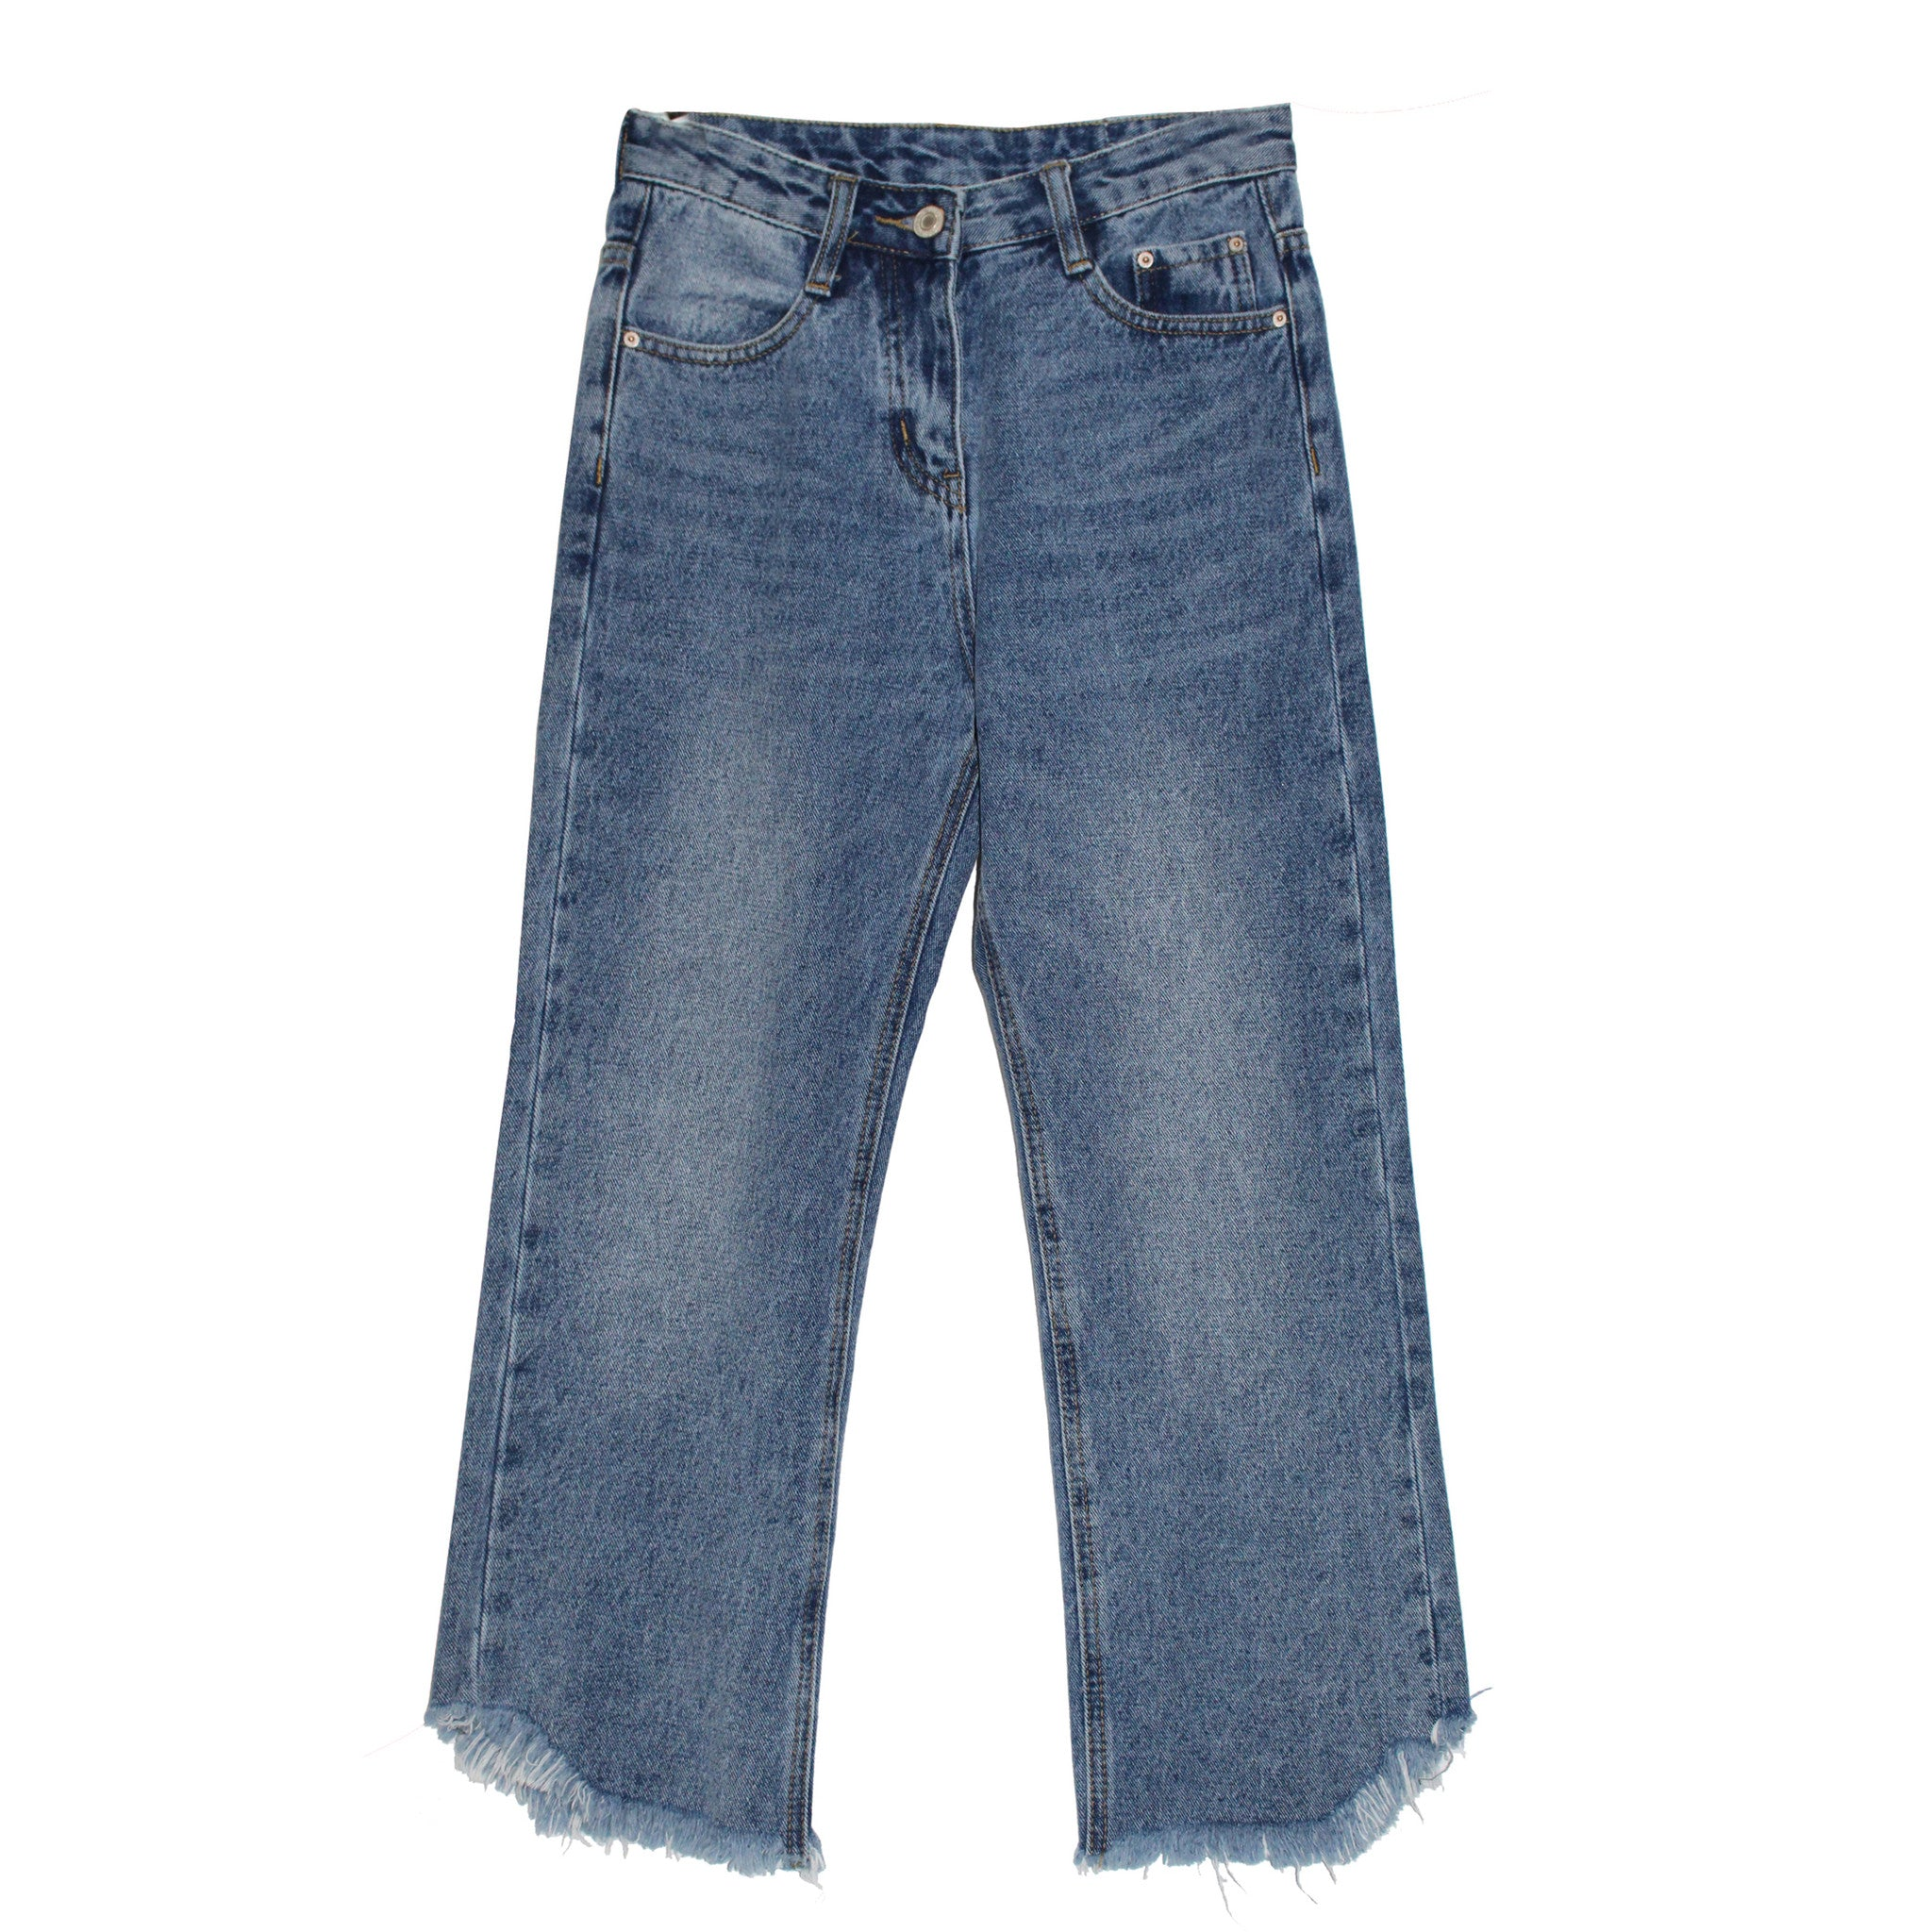 Cut Off Cropped Stonewashed Jeans - Indigo